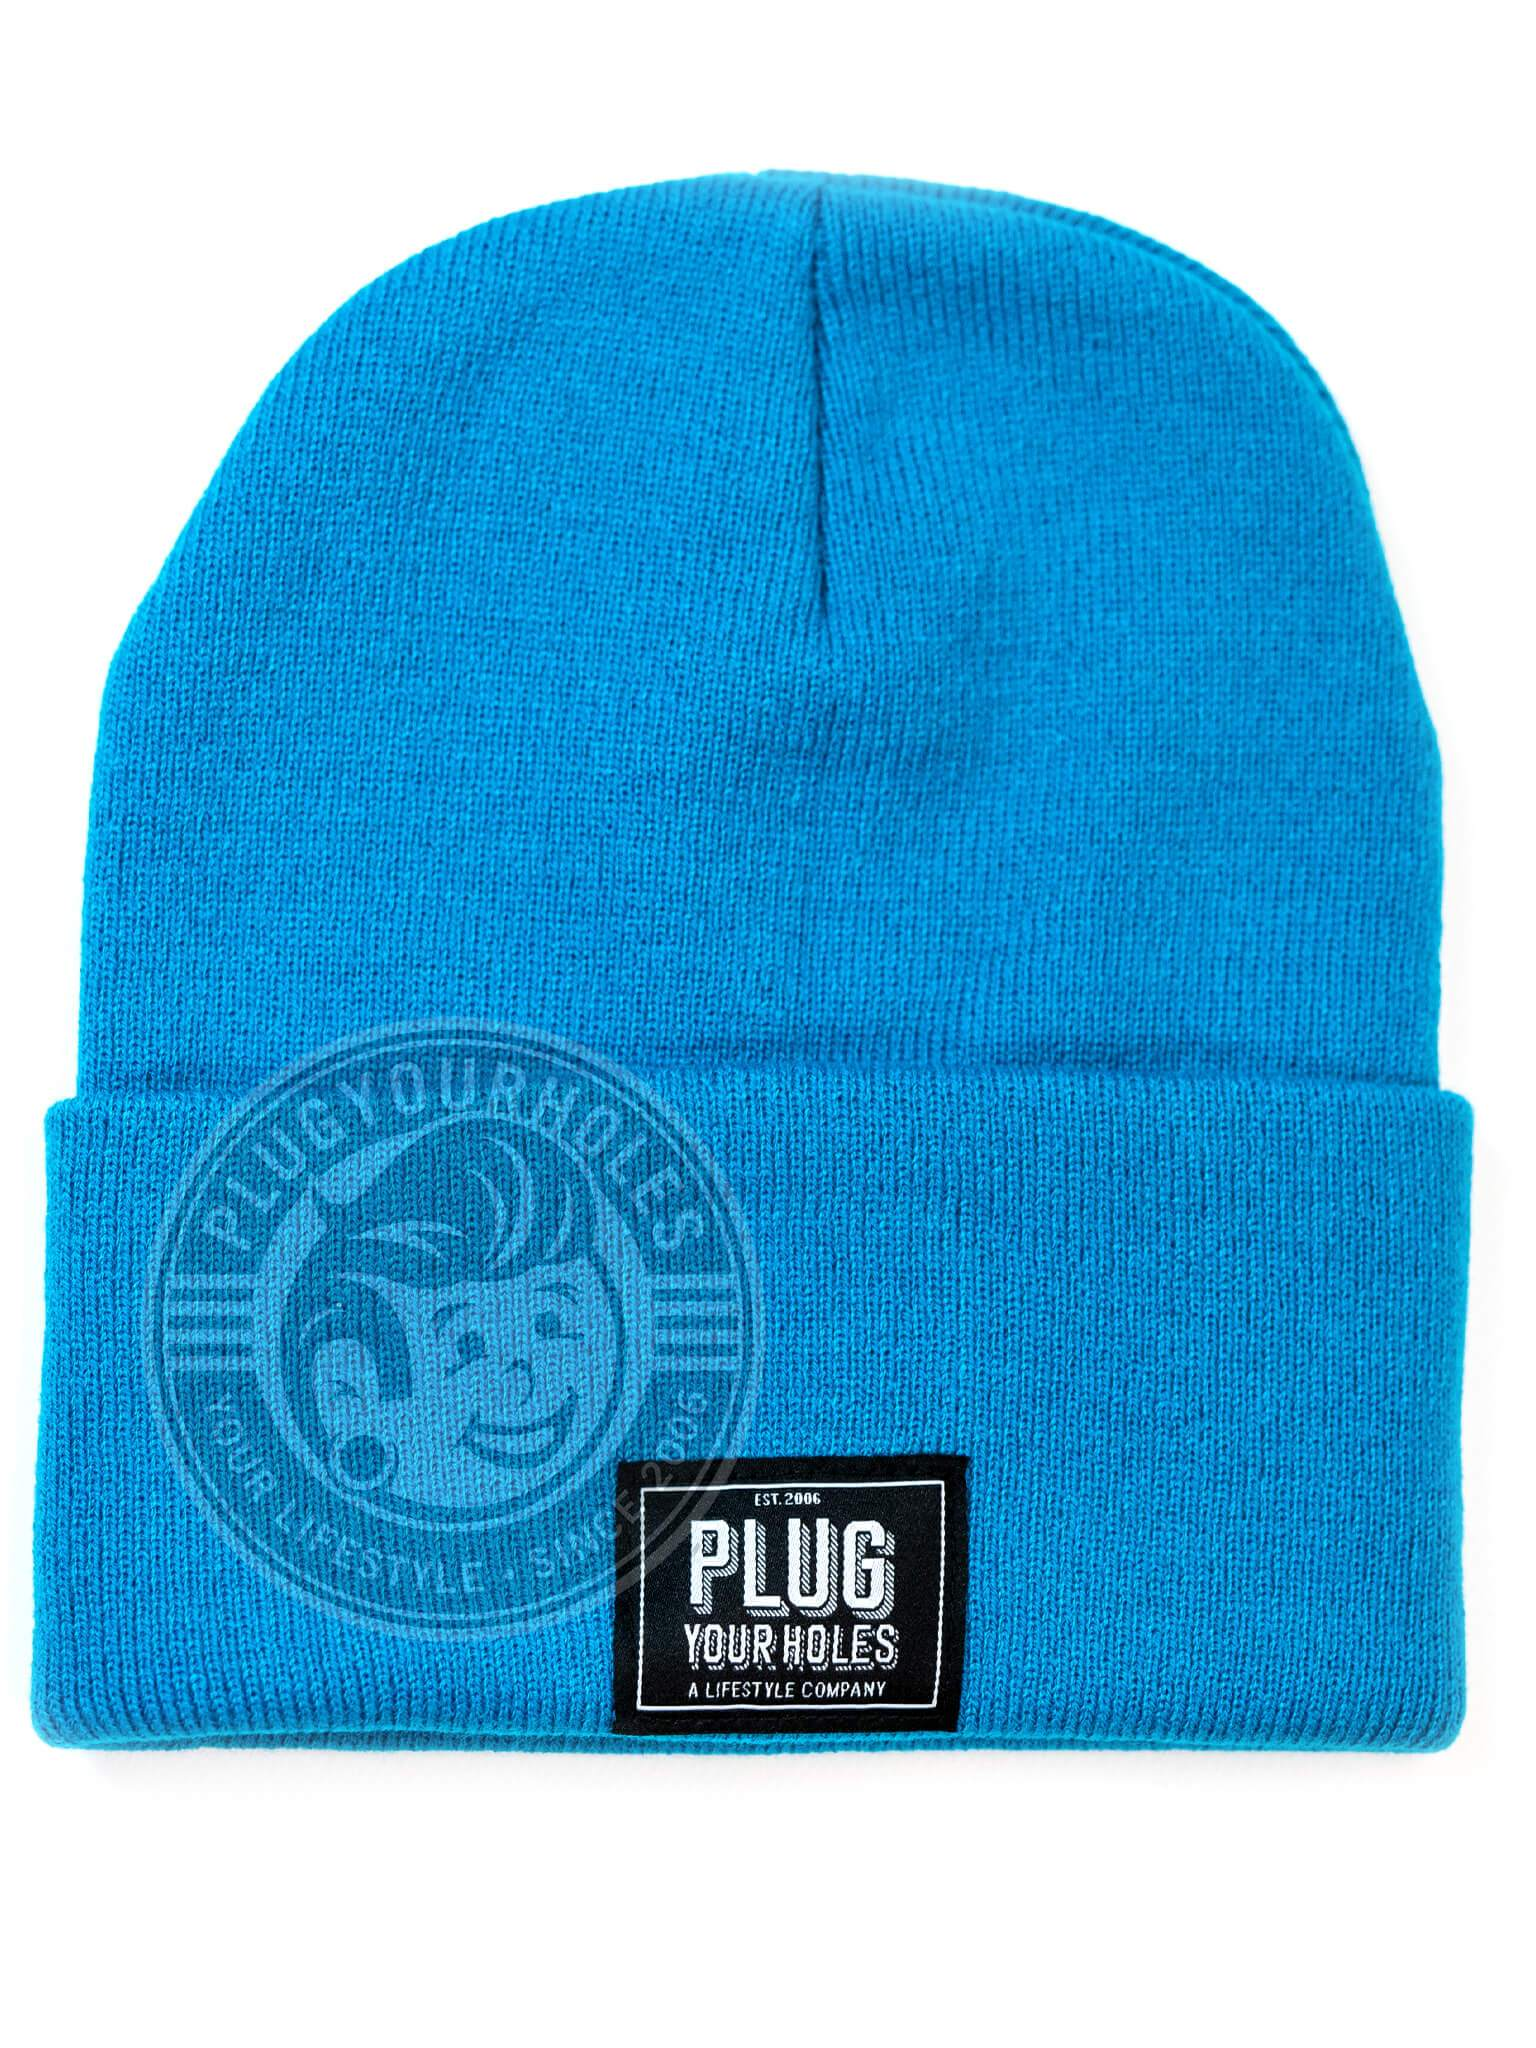 Plug Your Holes Monoco Blue Knit Beanie